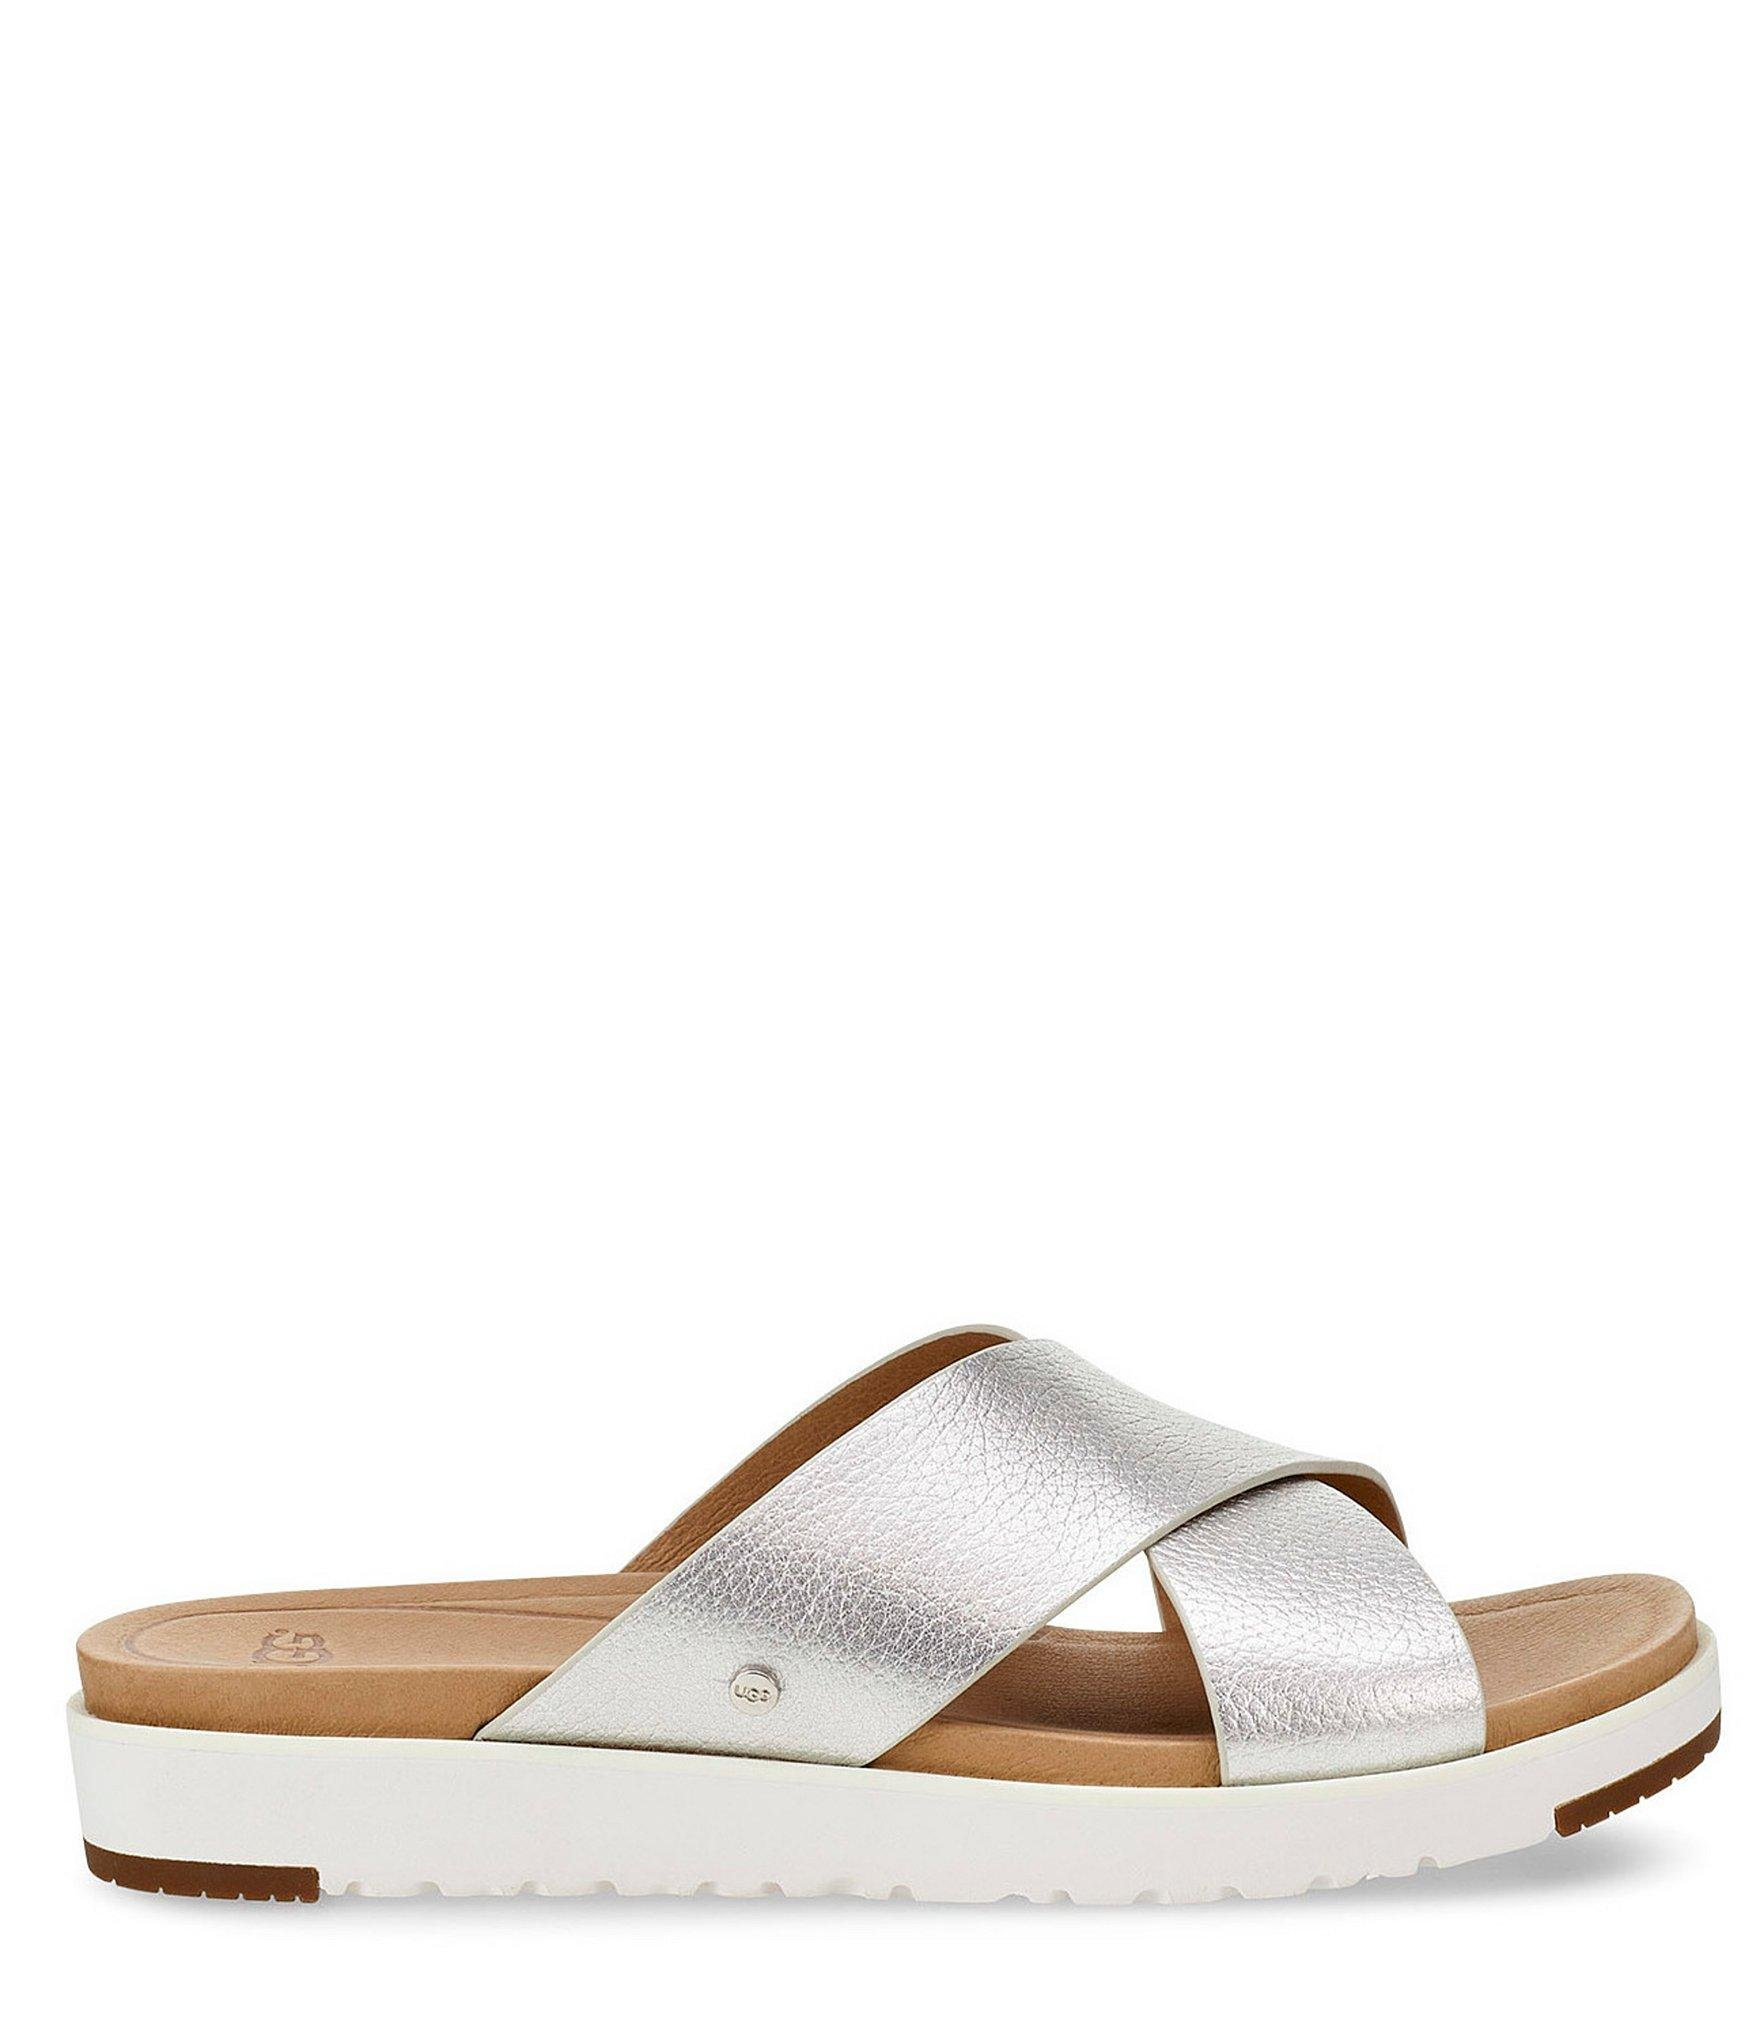 281b3ea8e39 Lyst - UGG Kari Metallic Slides in Metallic